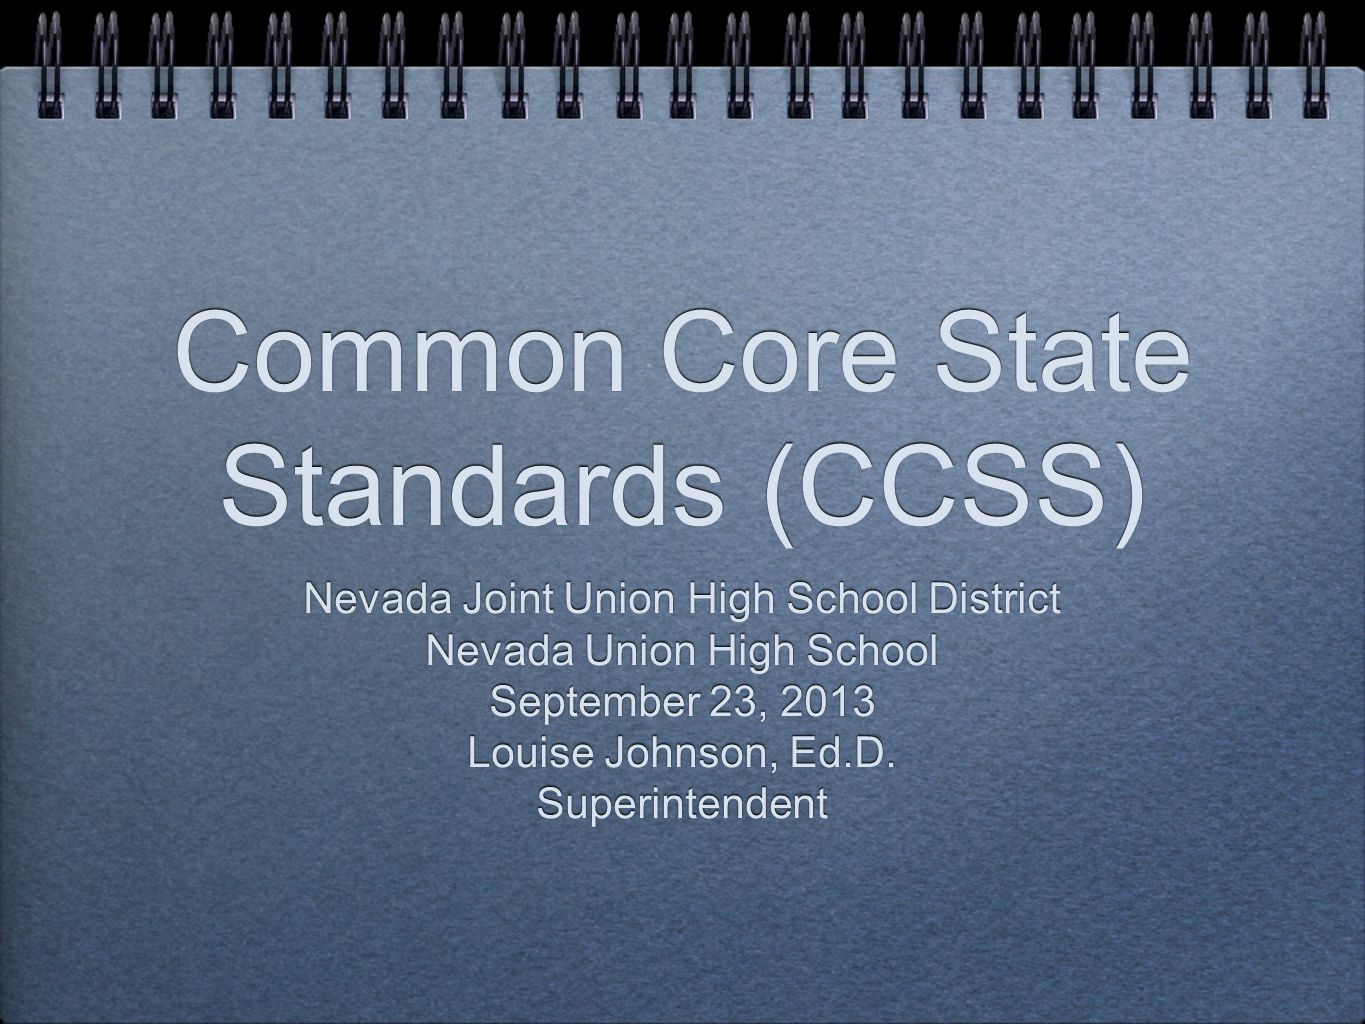 Common Core State Standards (CCSS) Nevada Joint Union High School District Nevada Union High School September 23, 2013 Louise Johnson, Ed.D.